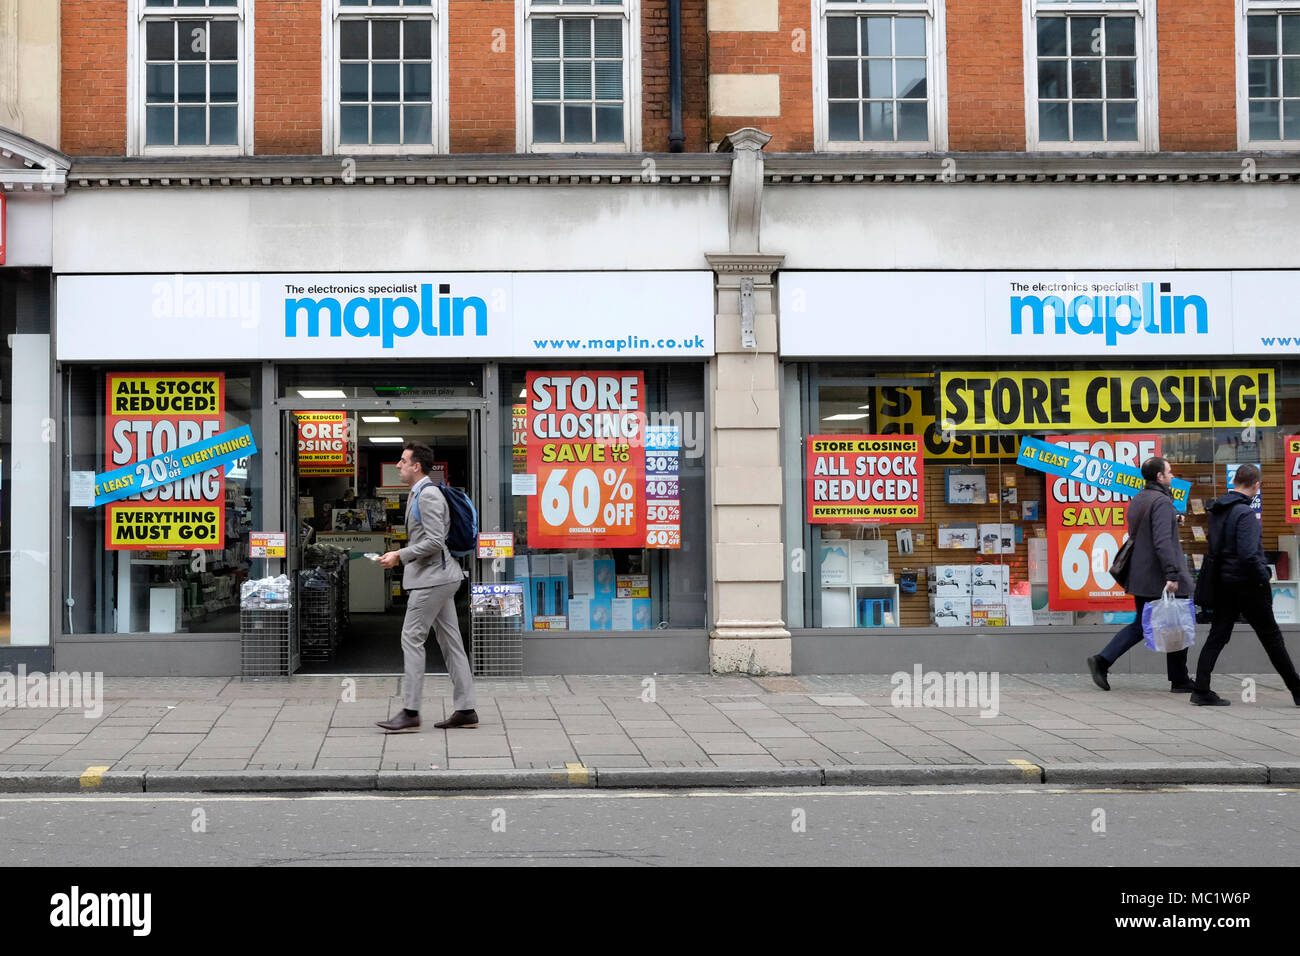 A general view of Maplin shop on Tottenham Court road, central London. - Stock Image